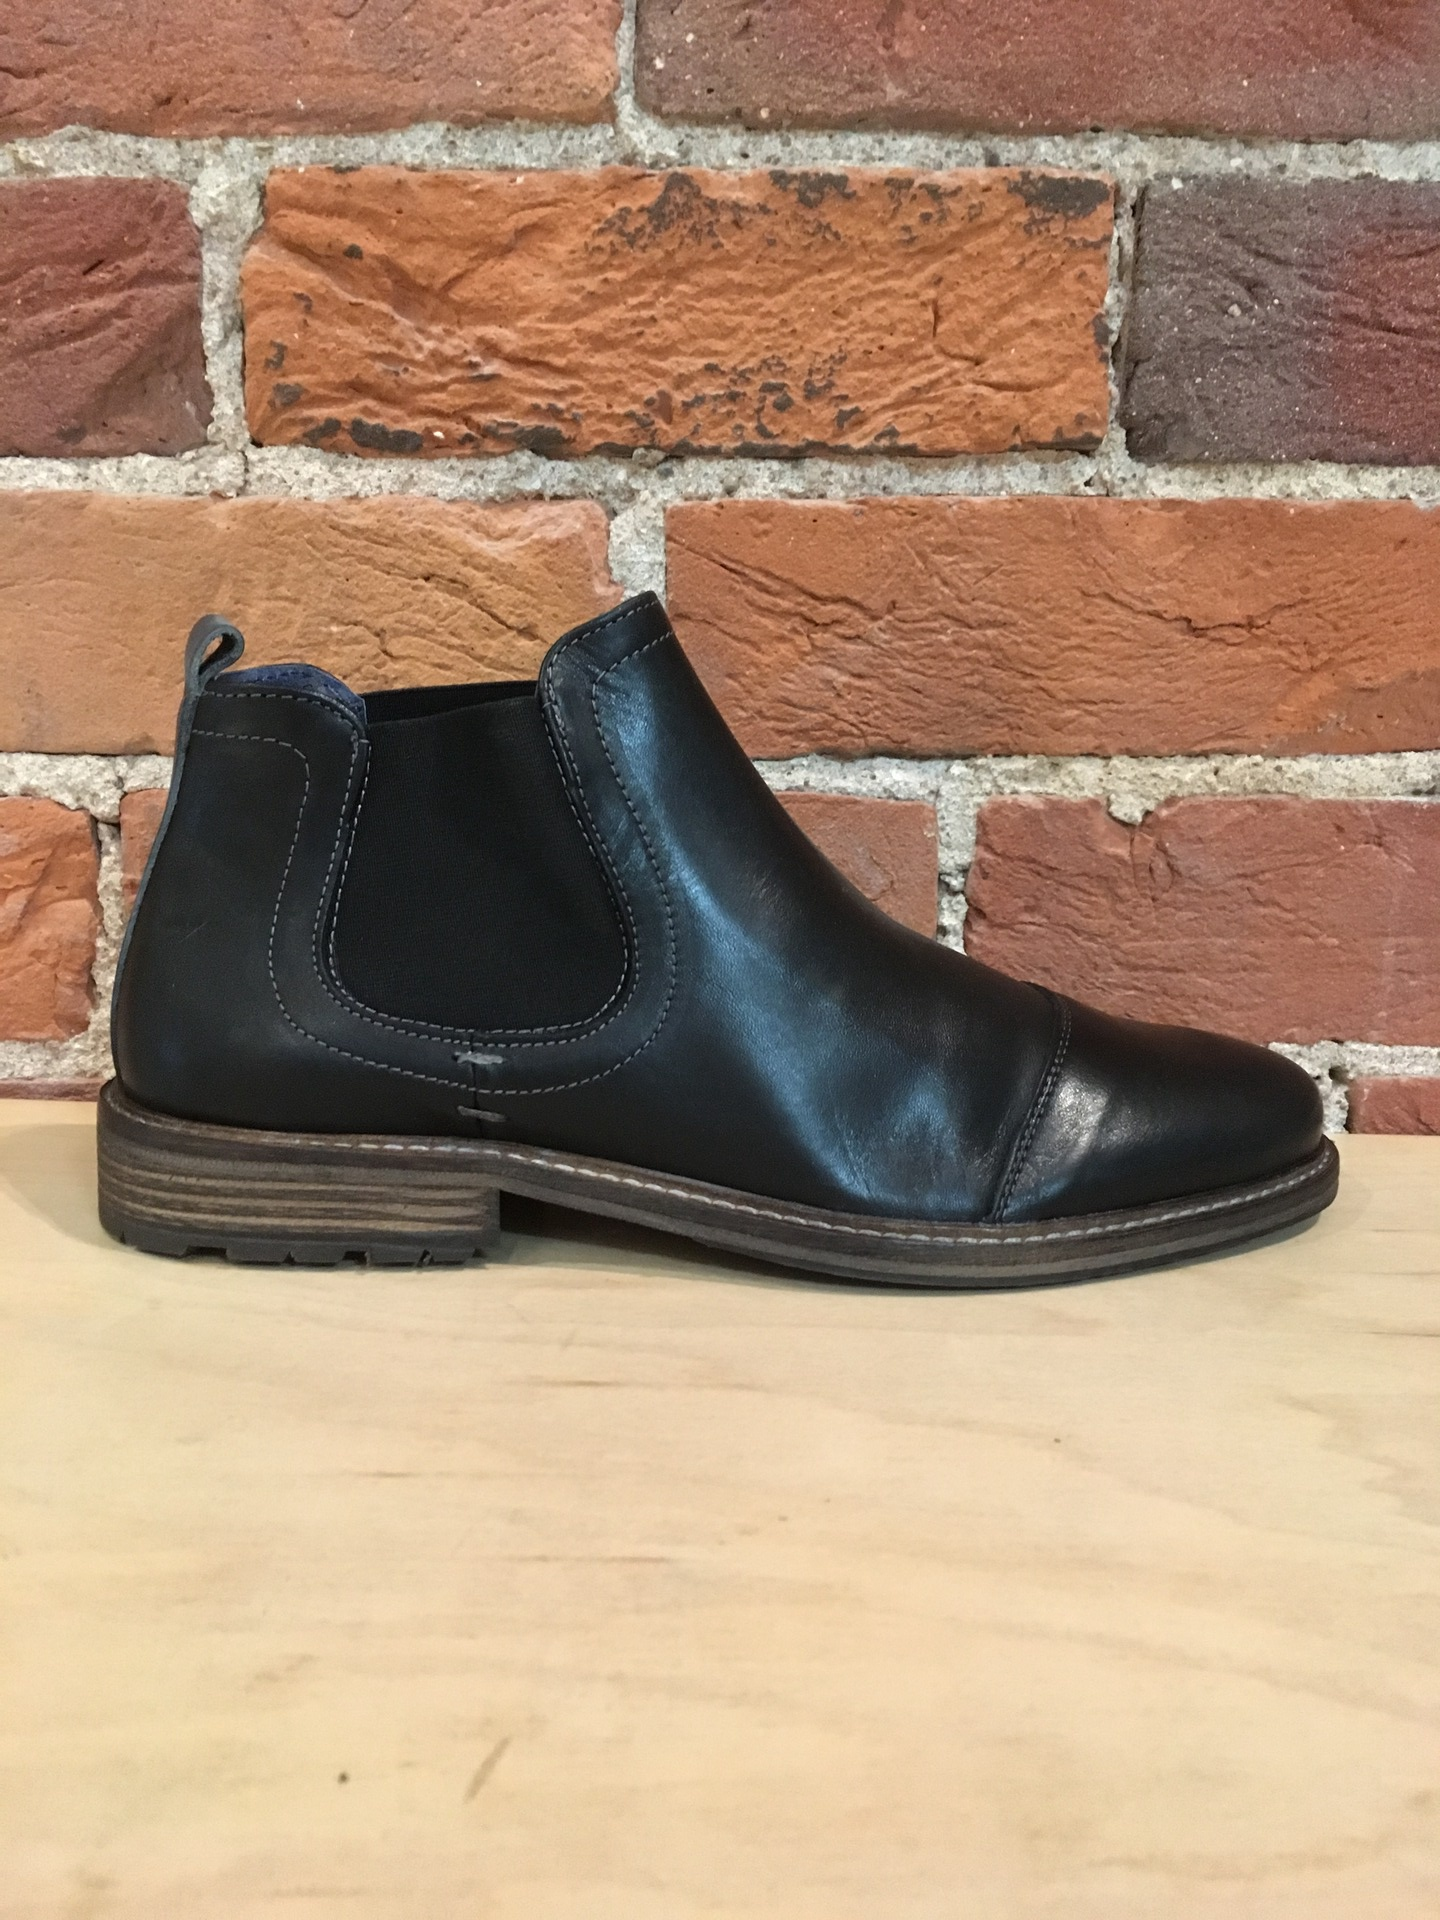 PARC CITY BOOT CO. - HYDE BOOT IN BLACK